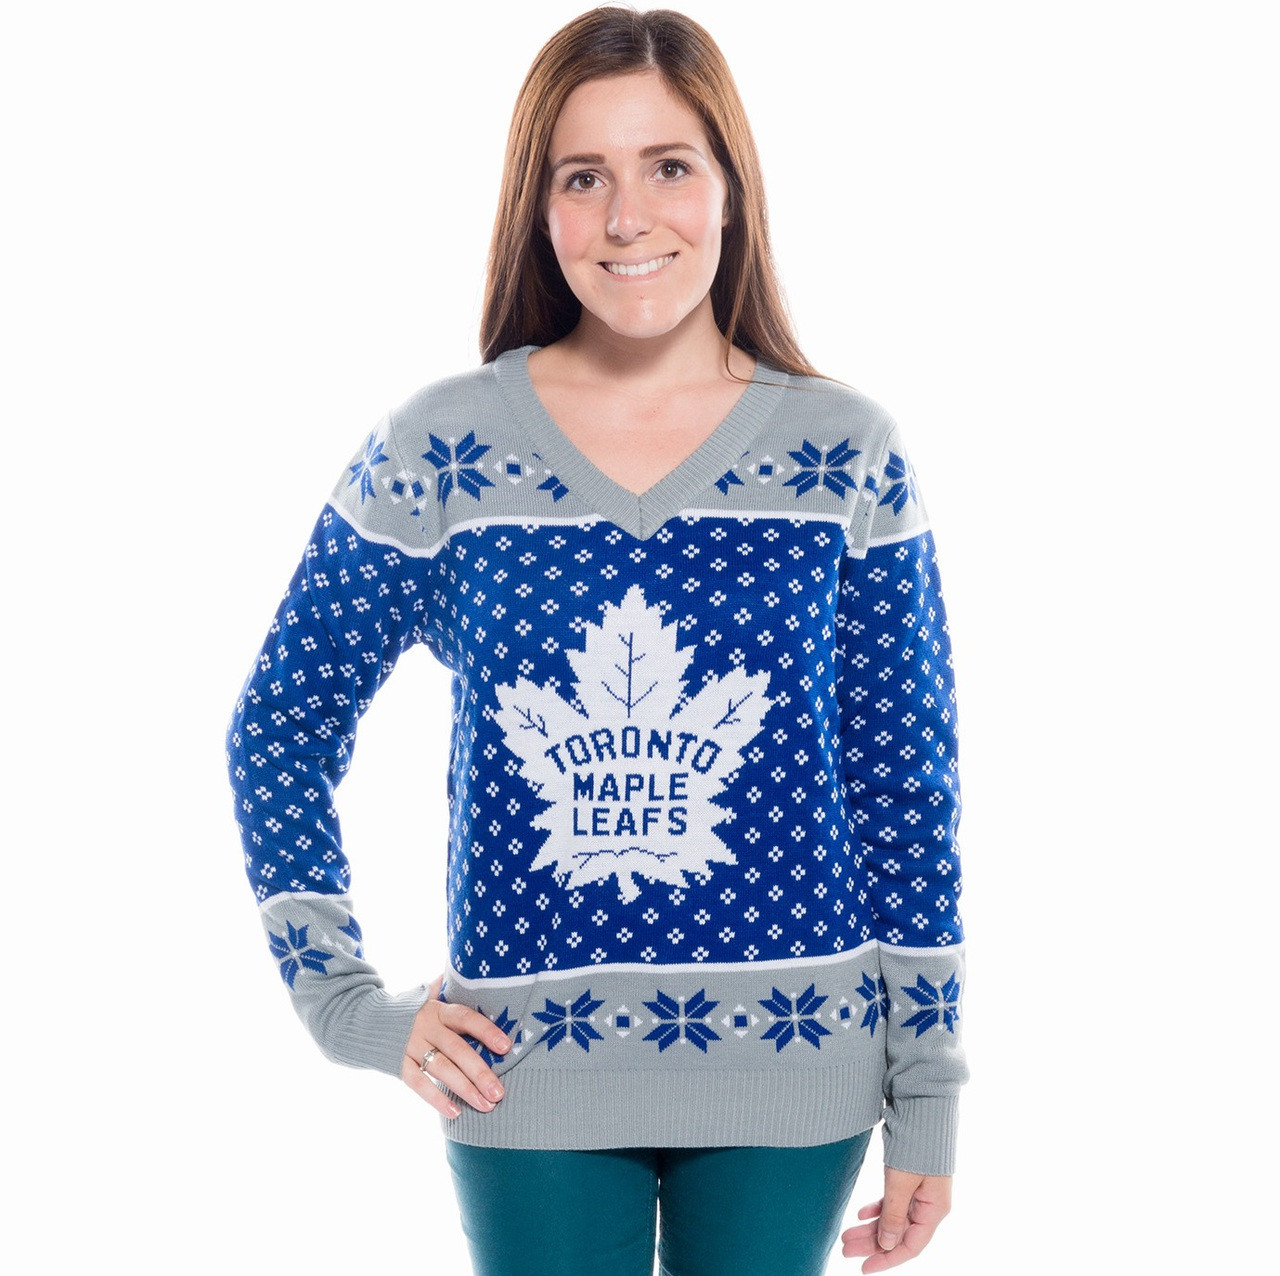 eff02b5eb68 Women s Toronto Maple Leafs Ugly Christmas Sweater 2016 NHL (Front)